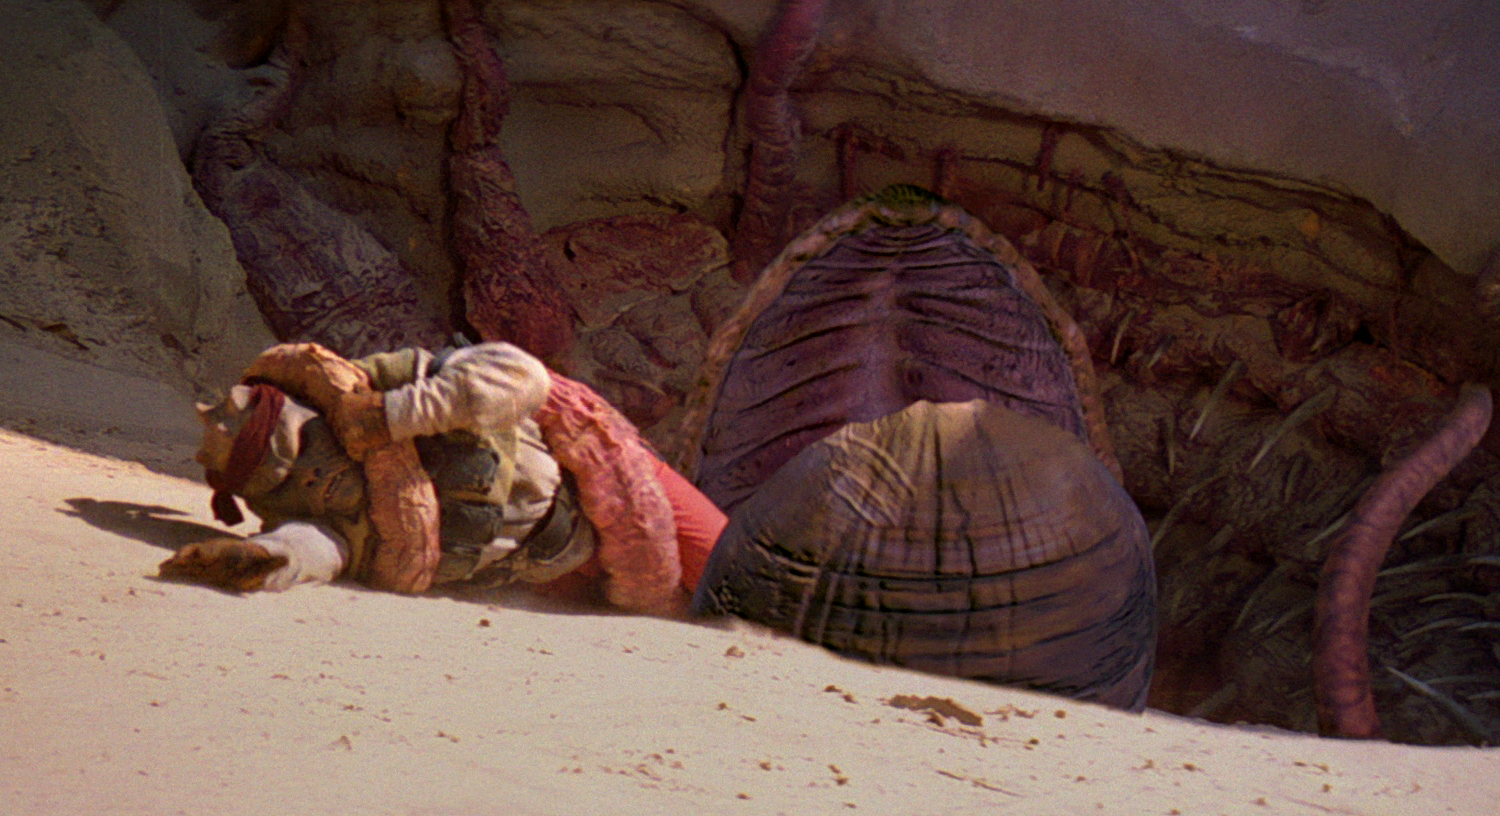 http://img3.wikia.nocookie.net/__cb20130401043102/starwars/images/2/2b/Kithaba_death.png